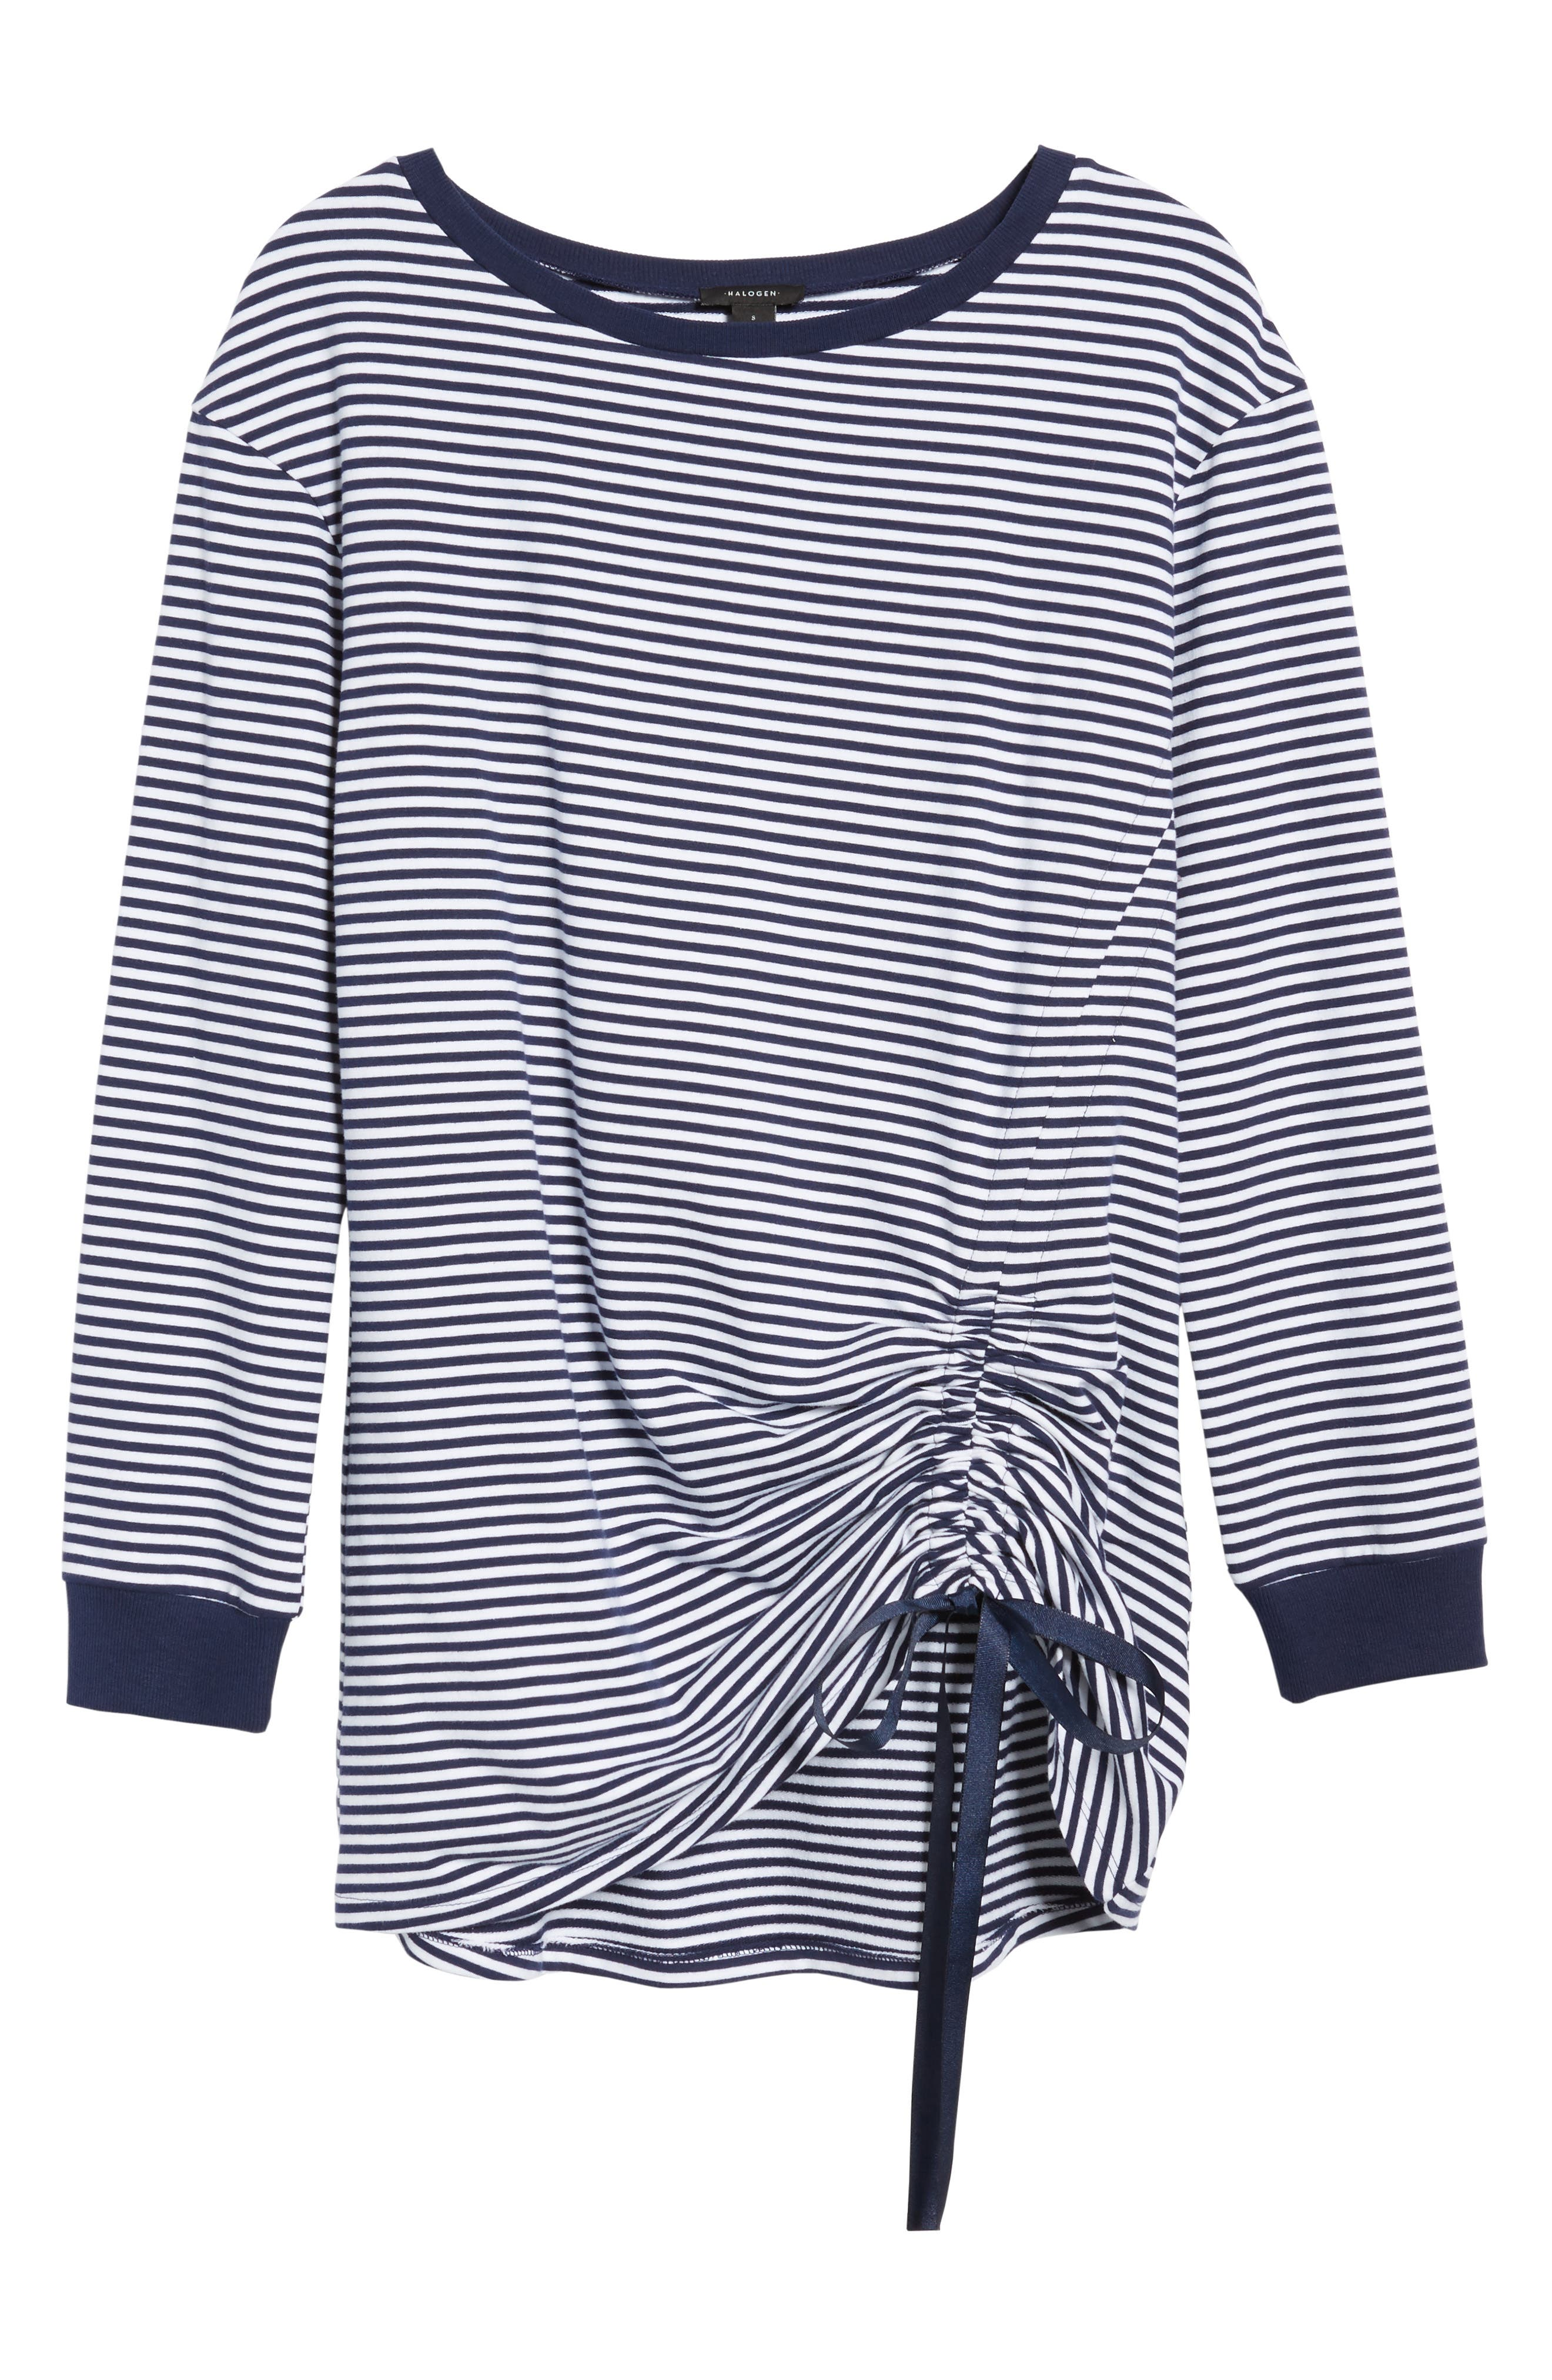 Ruched Front Tunic Sweatshirt,                             Alternate thumbnail 6, color,                             Navy- White Stripe